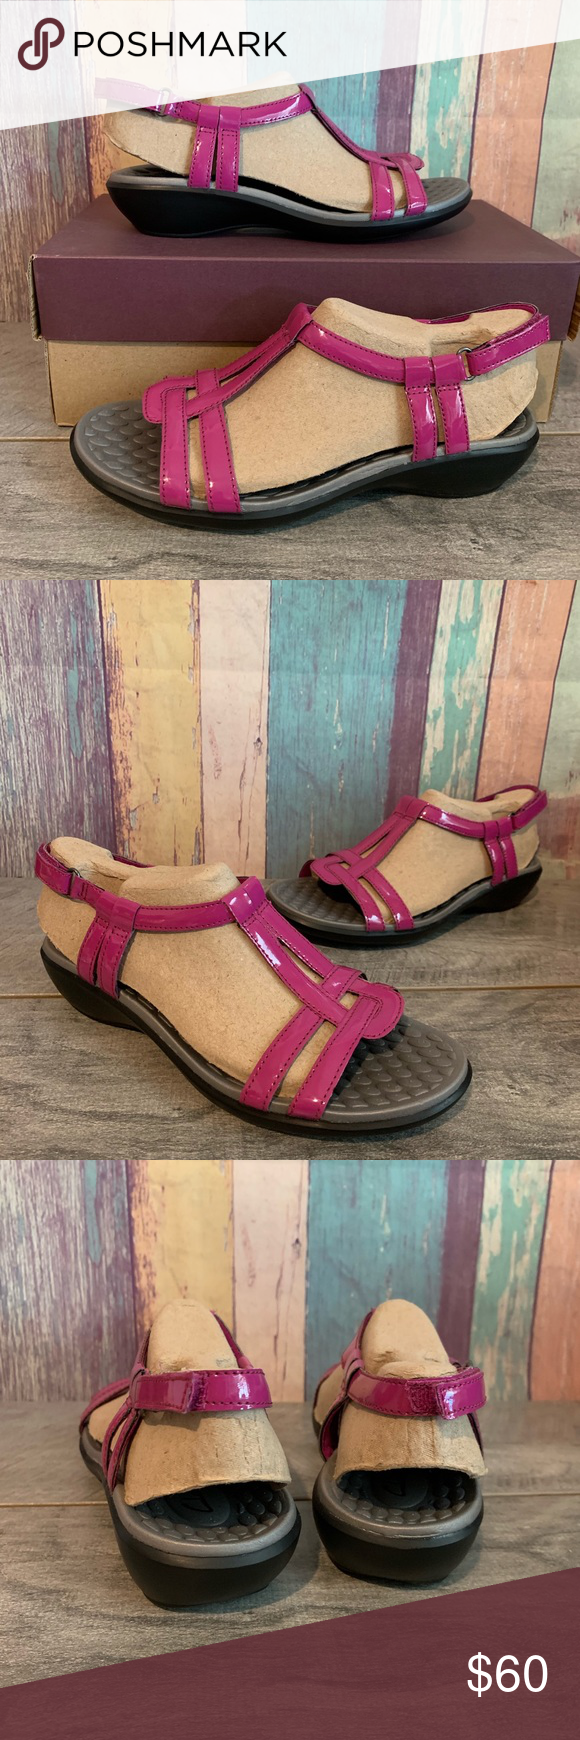 870c26eecf3 Clarks Women s Shoes Sandals Sonar Aster pink 6.5 Clarks Women s Shoes  Patent T-Strap Sandals Sonar Aster Pink Fuchsia Size 6.5 Clarks Shoes  Sandals